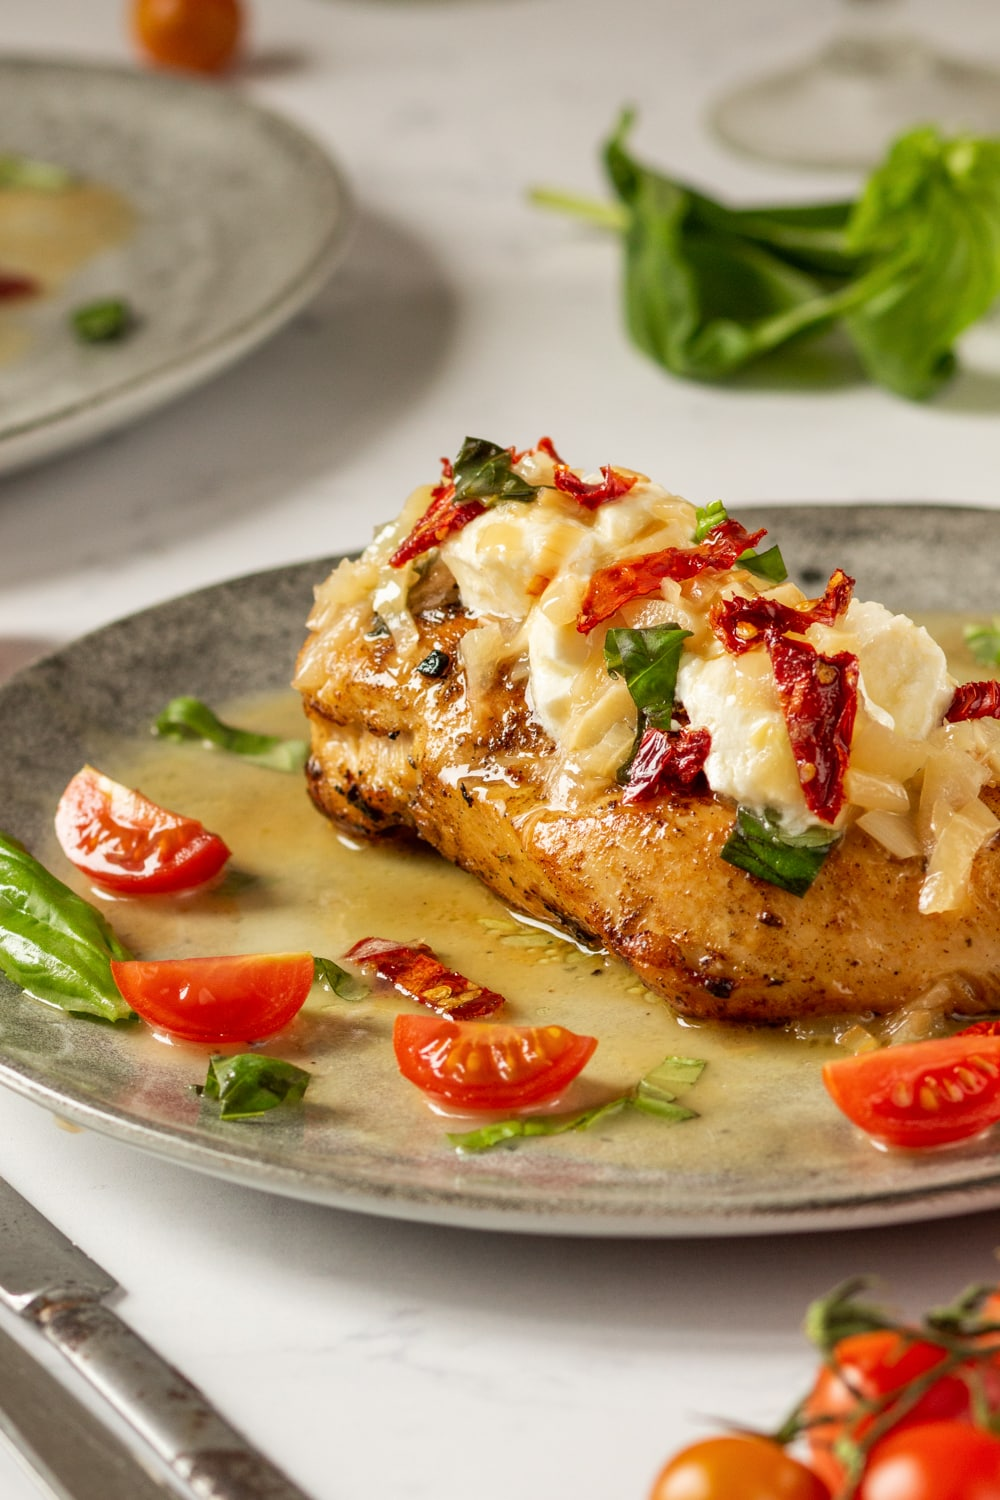 A chicken breast on a plate, and the chicken is topped with butter, goat cheese, sun-dried tomatoes, and goat cheese.